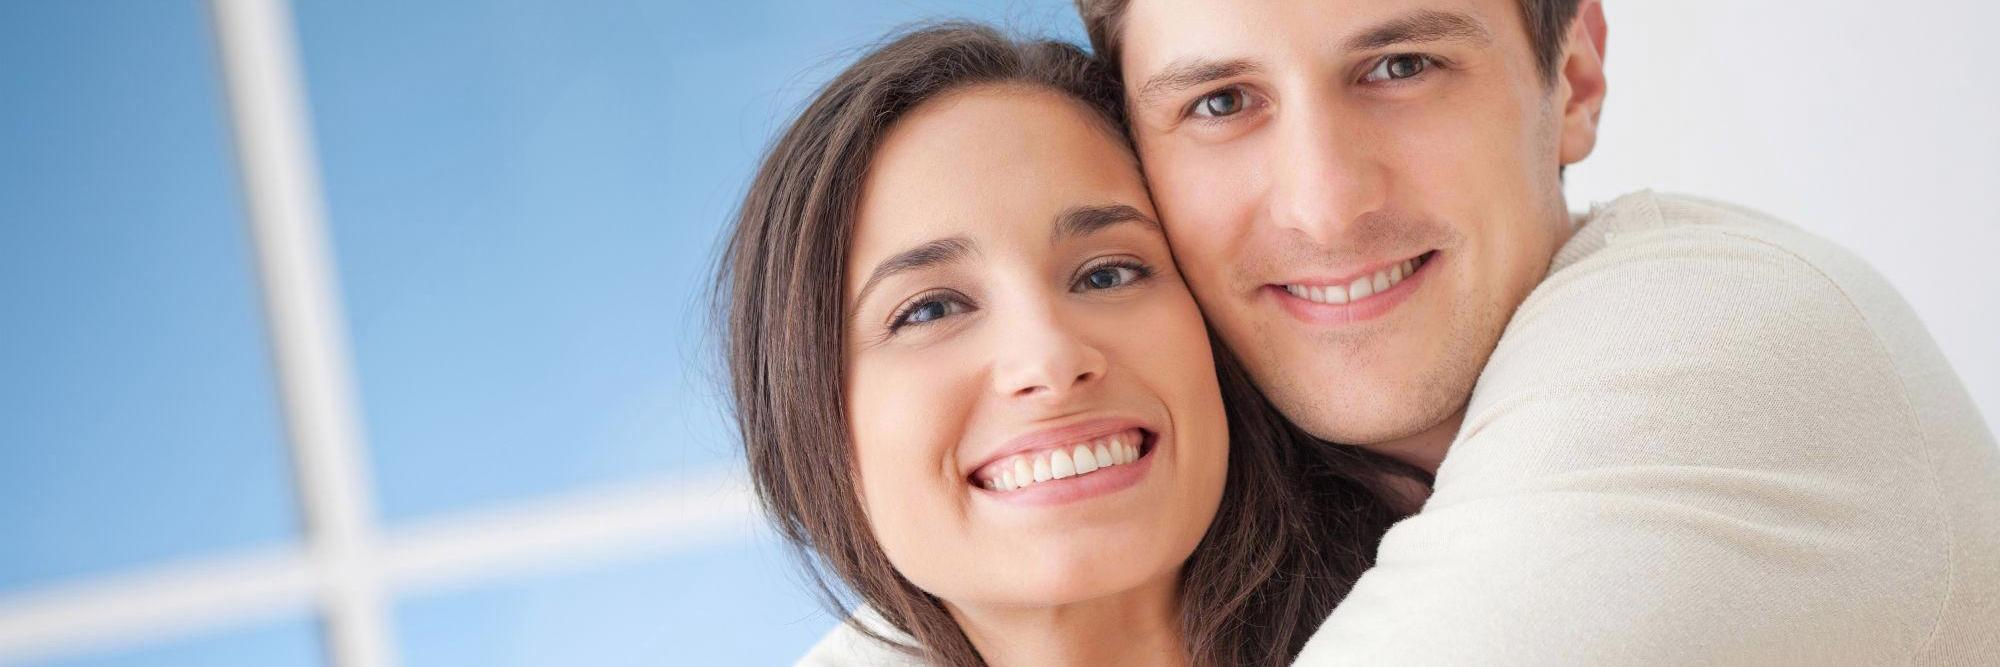 Periodontal Treatments at Hamilton Mill banner image